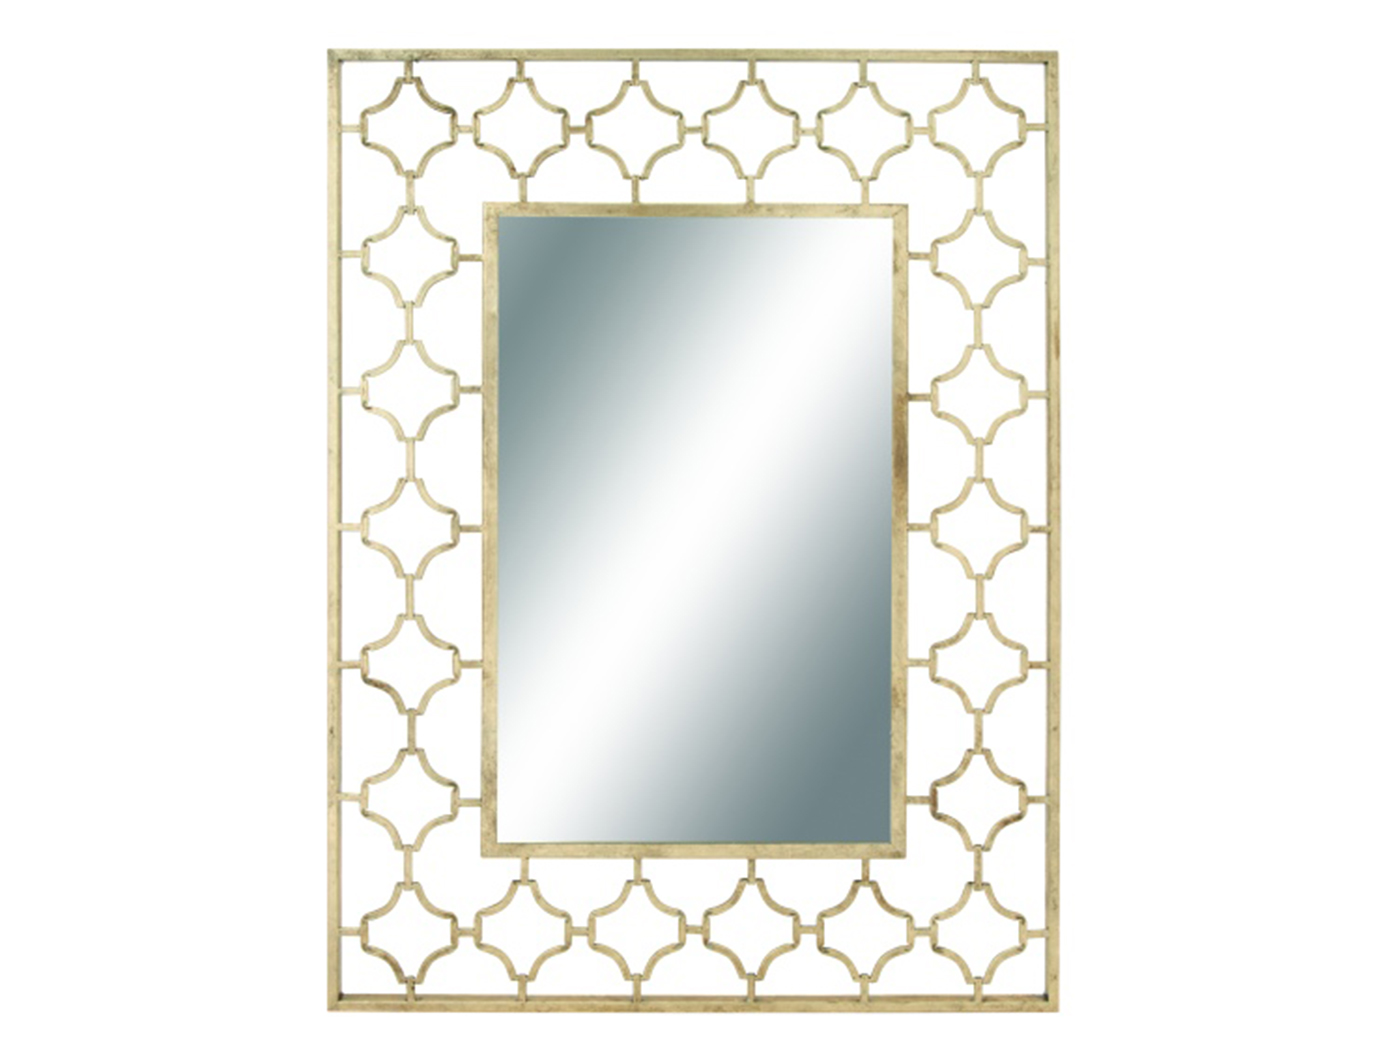 Gold Metal Wall Mirror: Merry Christmas Sign